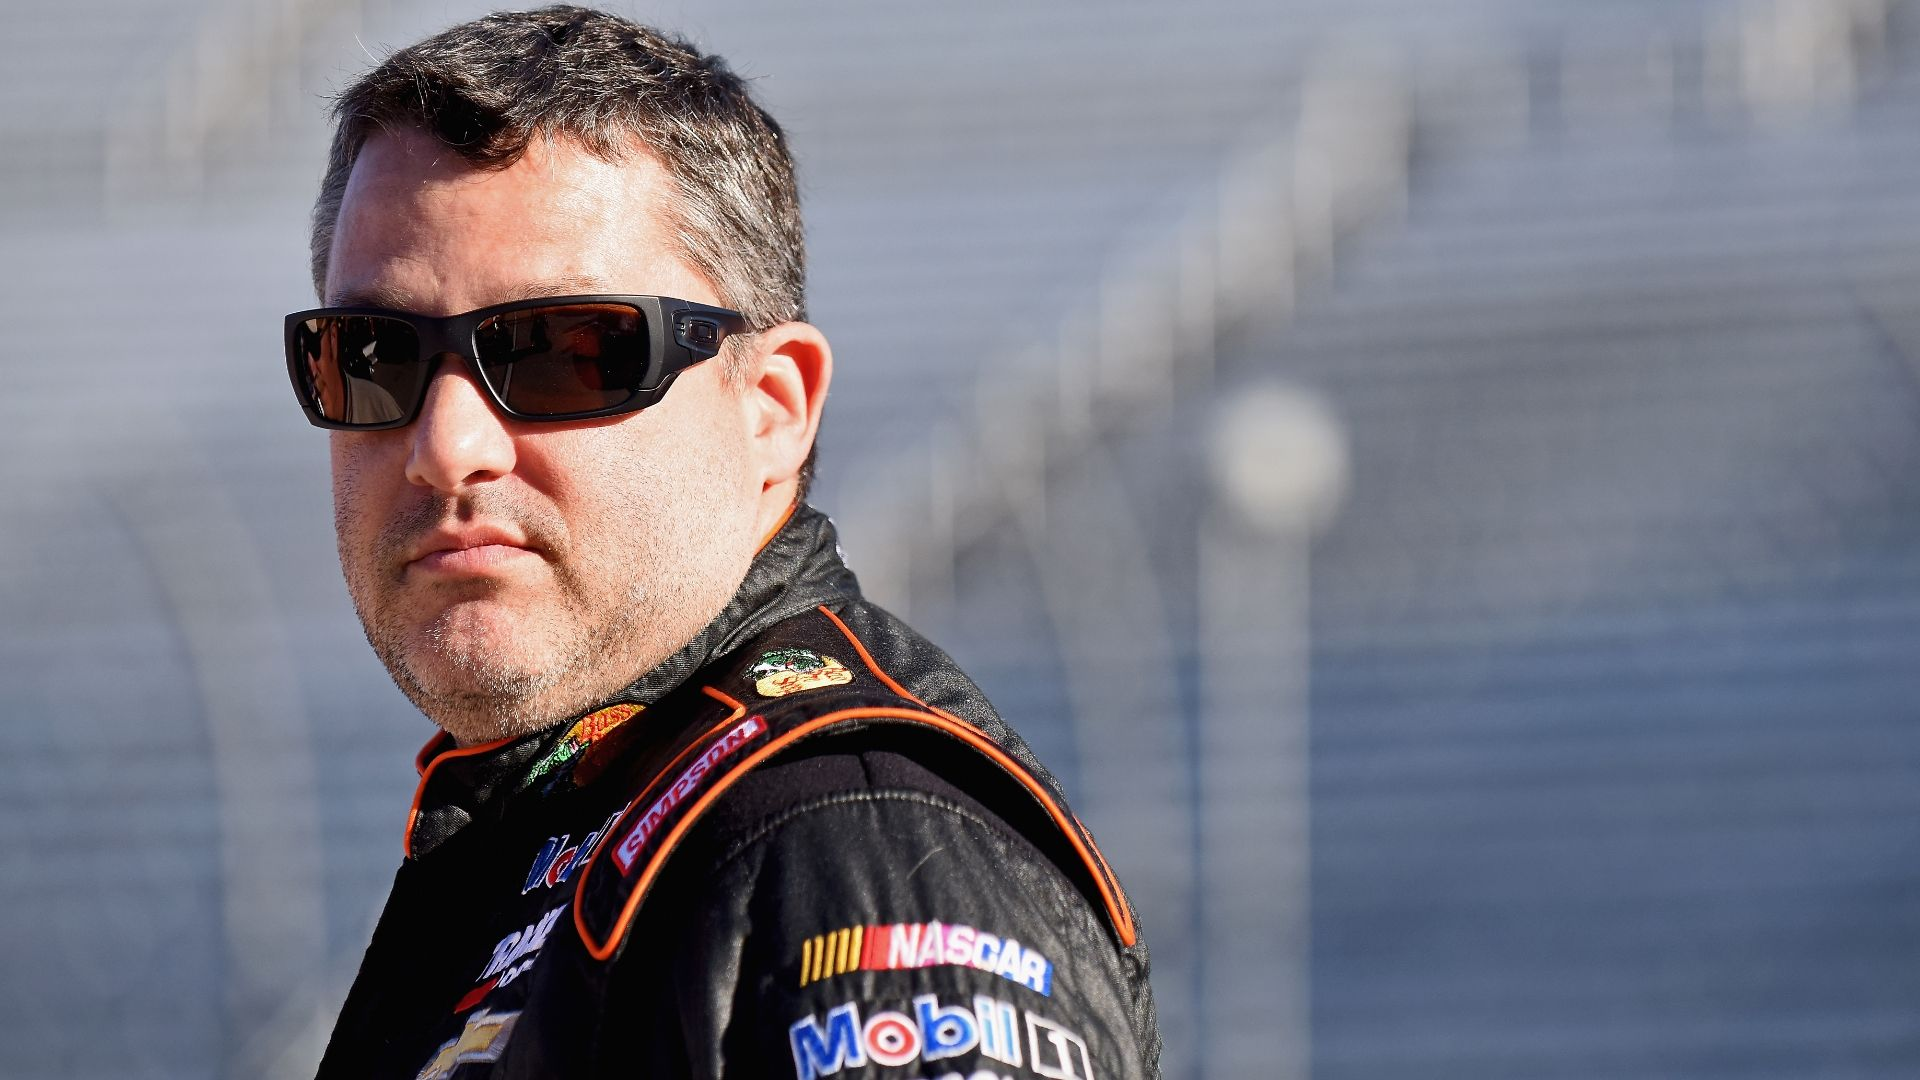 https://secure.espncdn.com/combiner/i?img=/media/motion/2016/0408/dm_160408_nascar_stewart_back_injury_news/dm_160408_nascar_stewart_back_injury_news.jpg